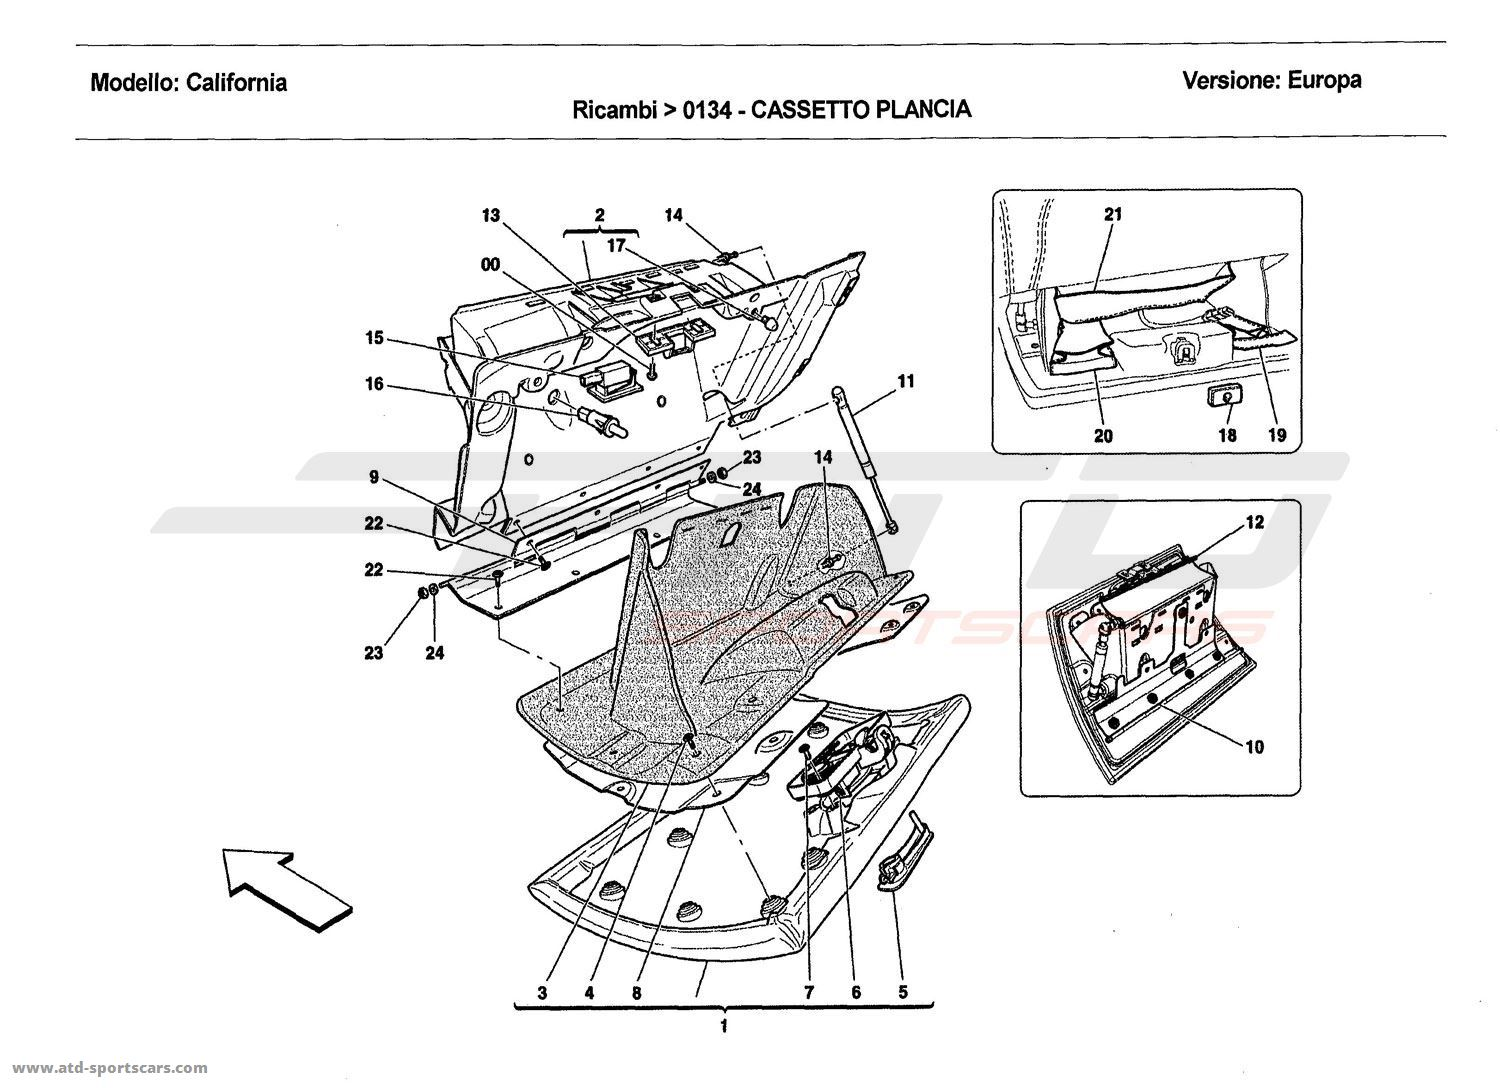 Service manual [How To Install Glove Box Handle 2011 Dodge